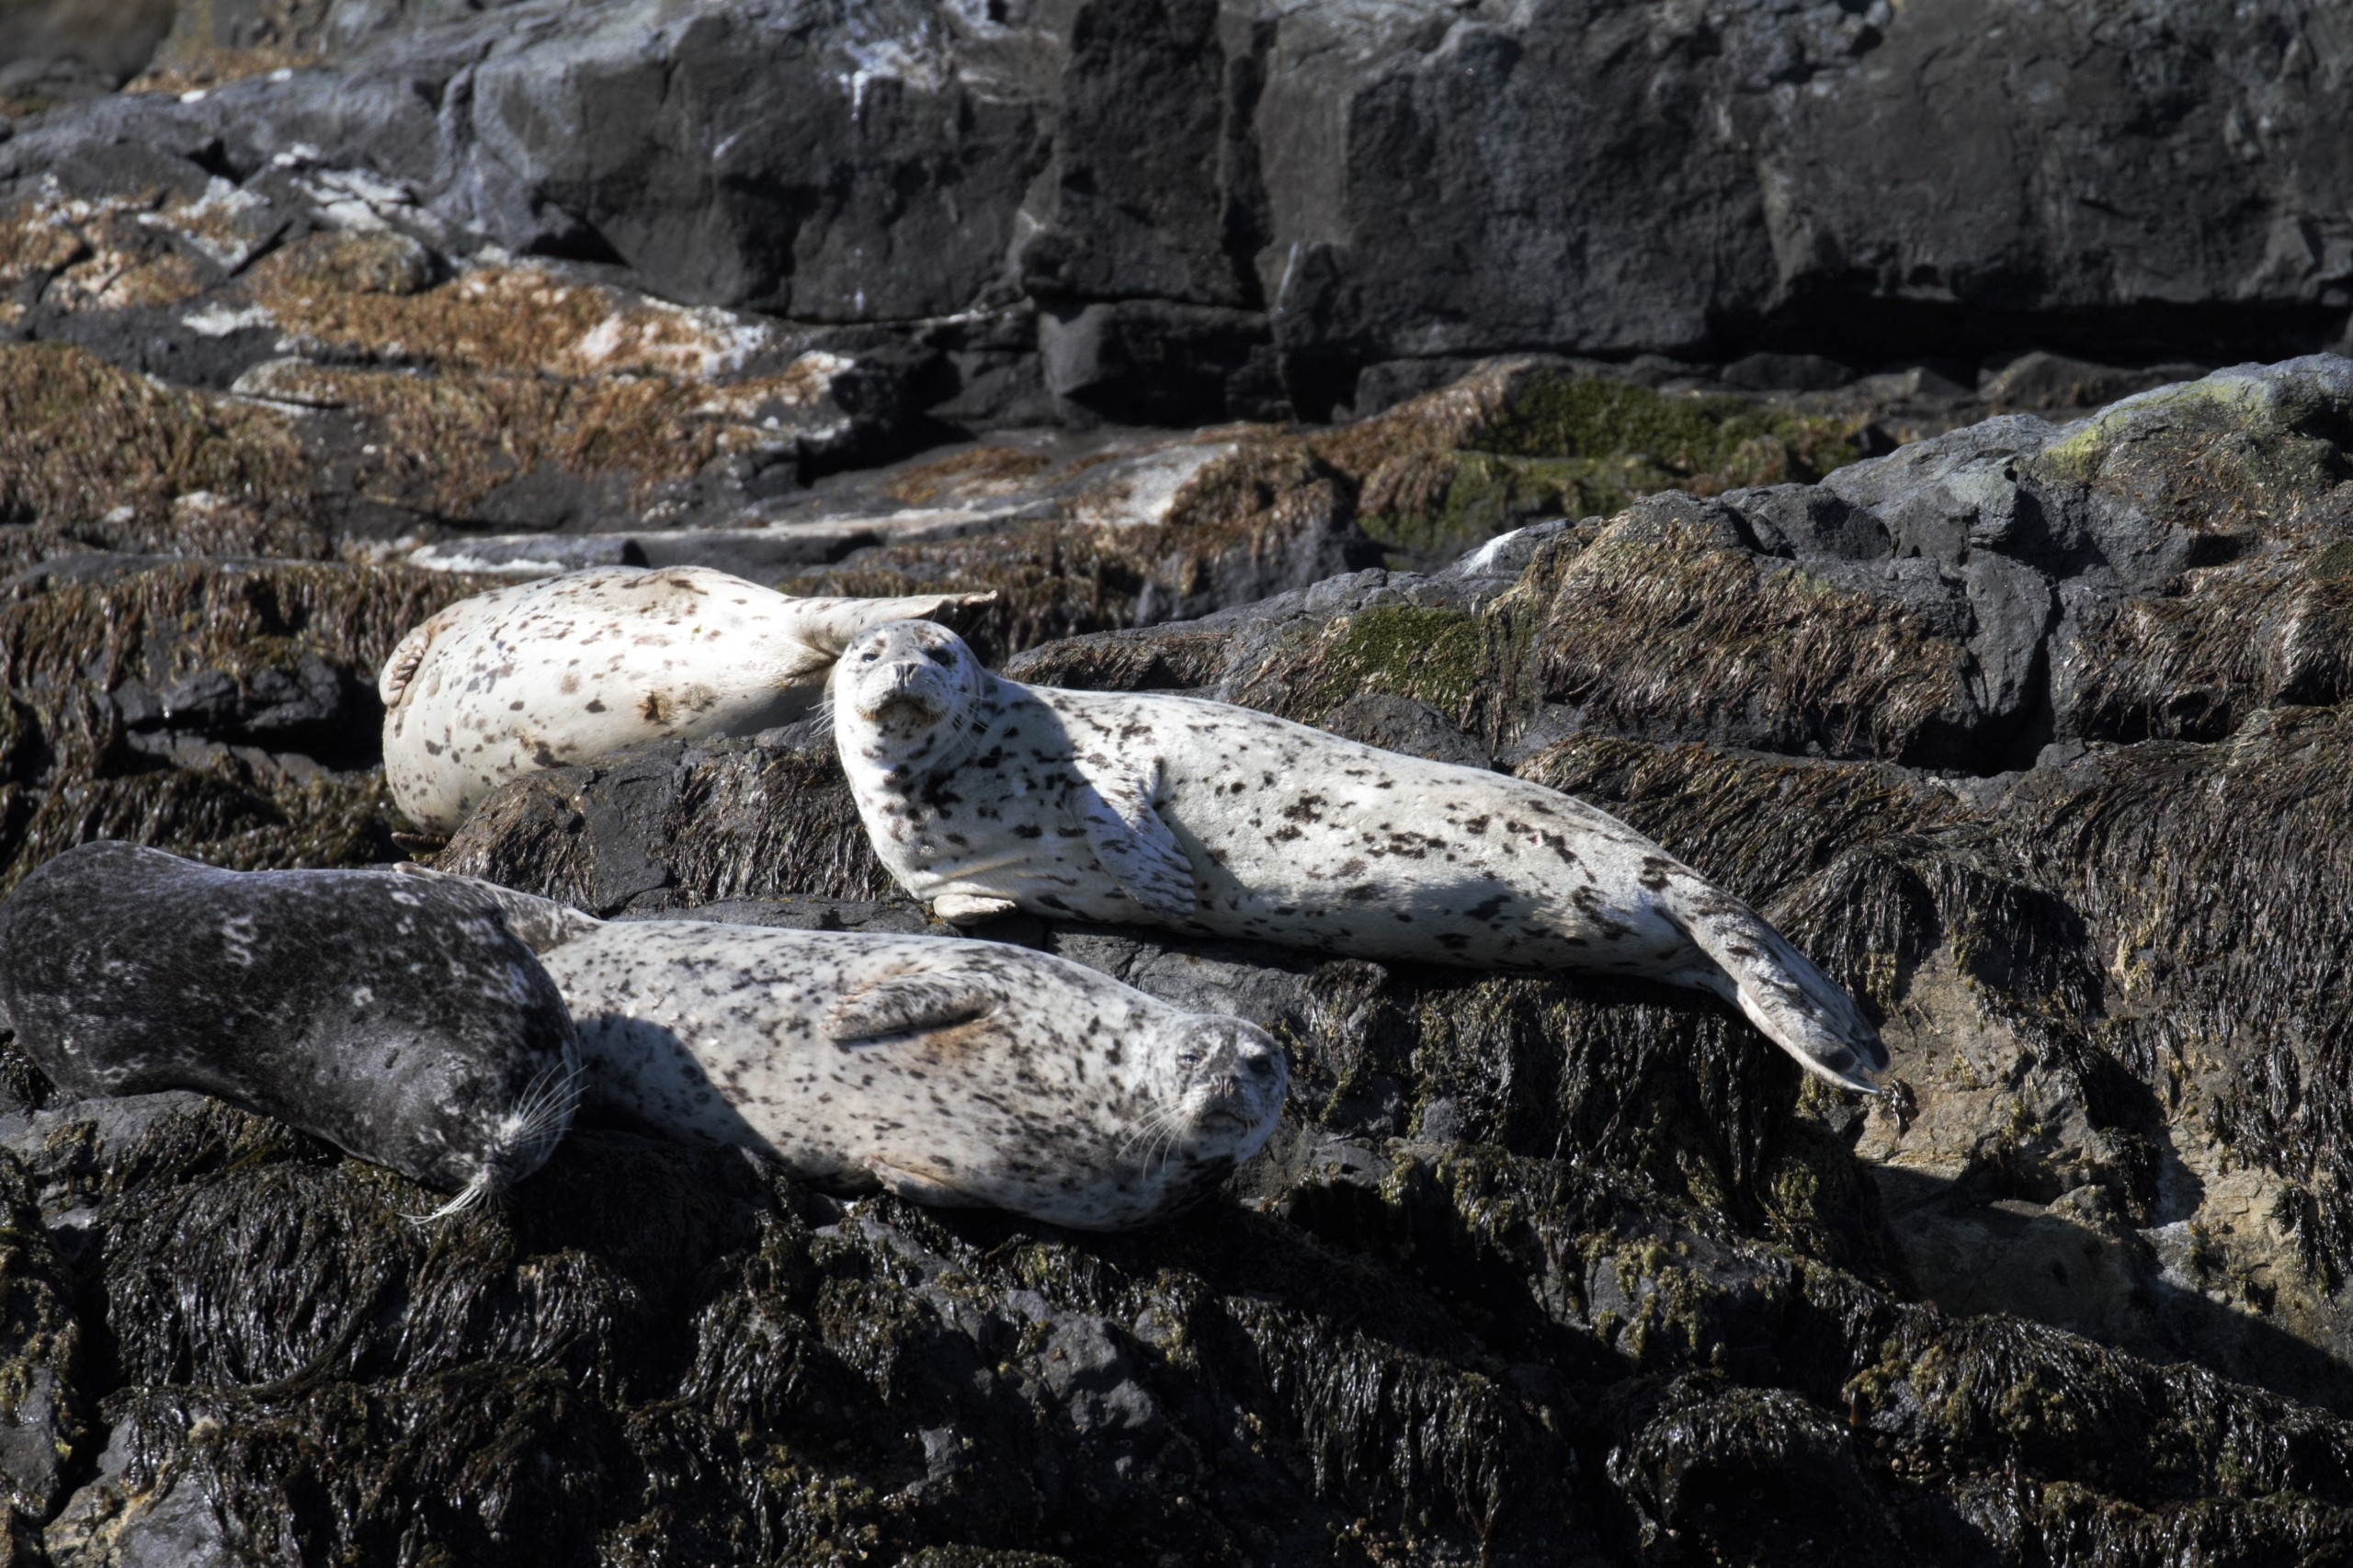 Harbour Seals in sunshine. Photo taken by SpringTide Crew with a zoom lens.